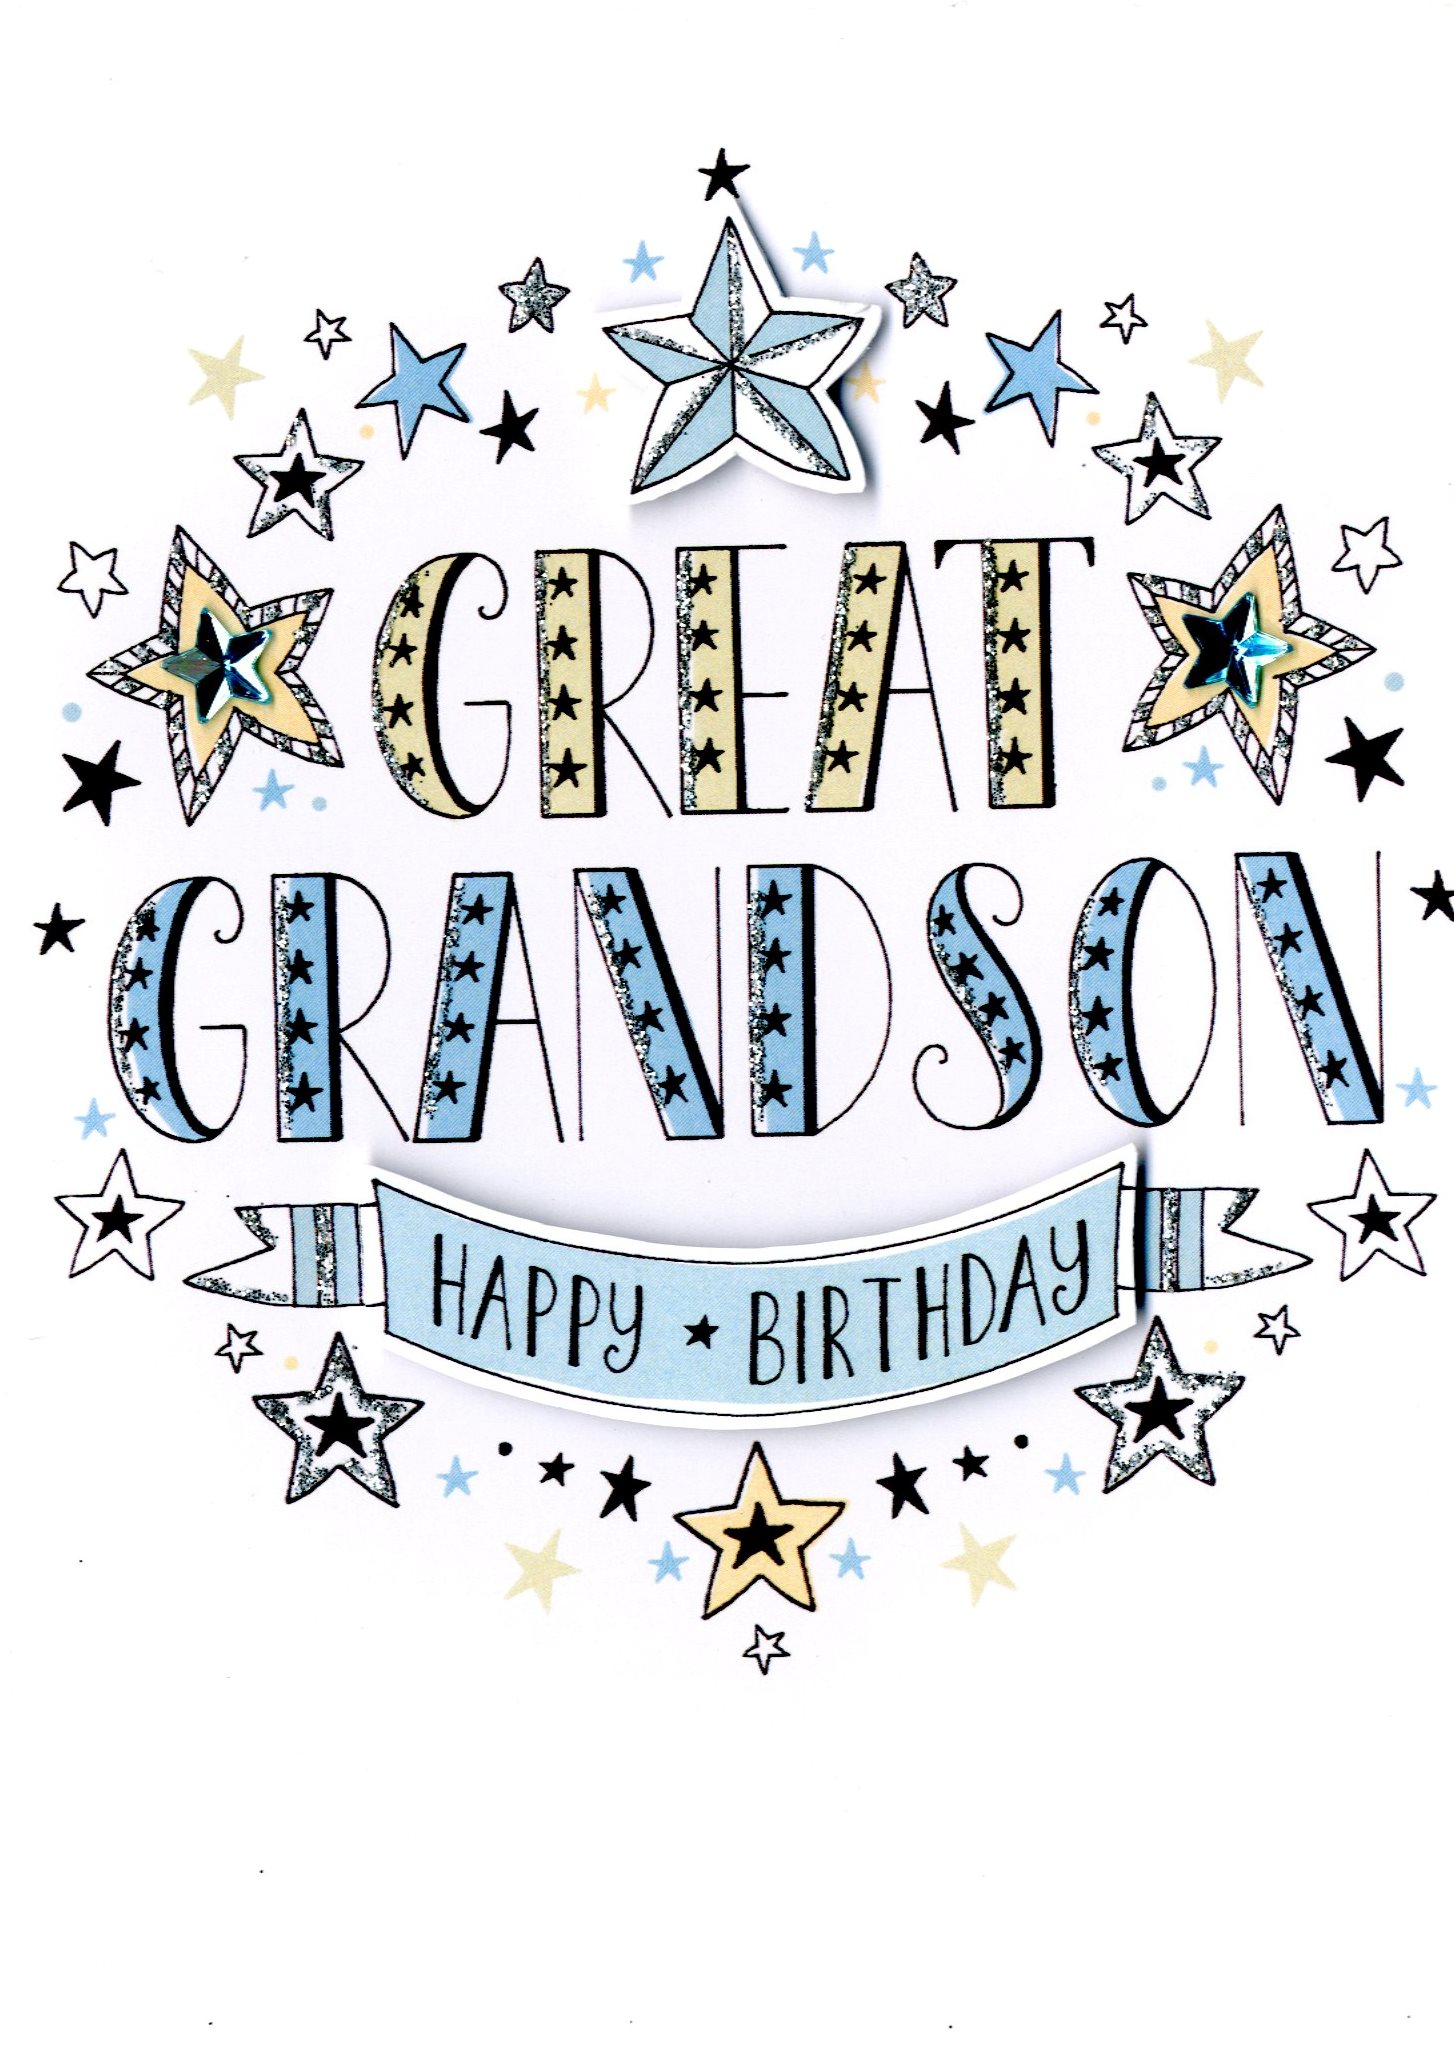 Great grandson birthday greeting card cards love kates great grandson birthday greeting card m4hsunfo